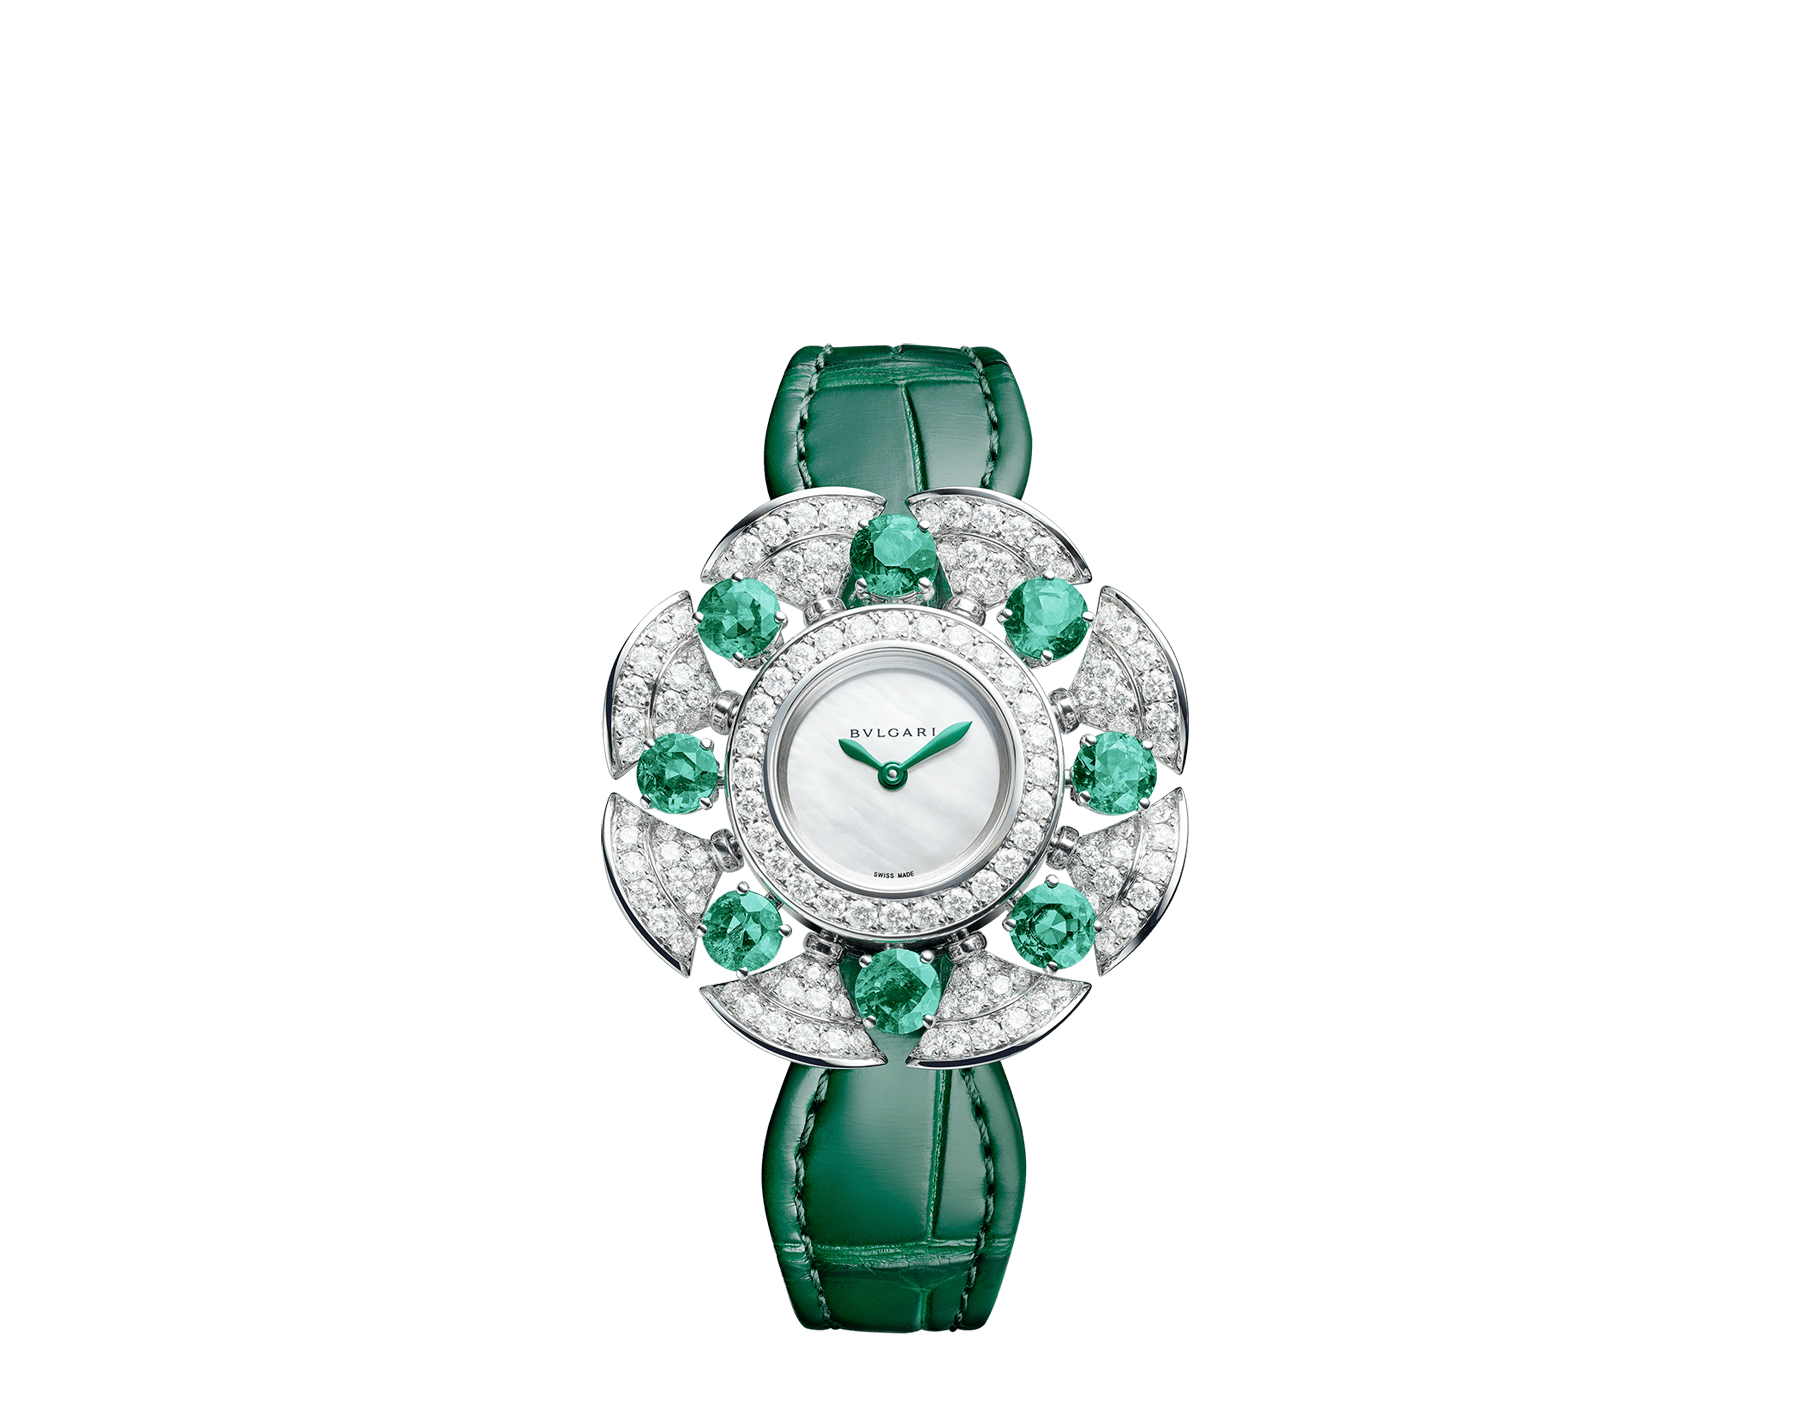 DIVAS' DREAM Divissima High Jewellery watch with 18 kt white gold case and mobile petals set with 8 brilliant-cut emeralds and round brilliant-cut diamonds, mother-of-pearl dial, and green alligator bracelet. Water-resistant up to 30 metres 103505 image 1